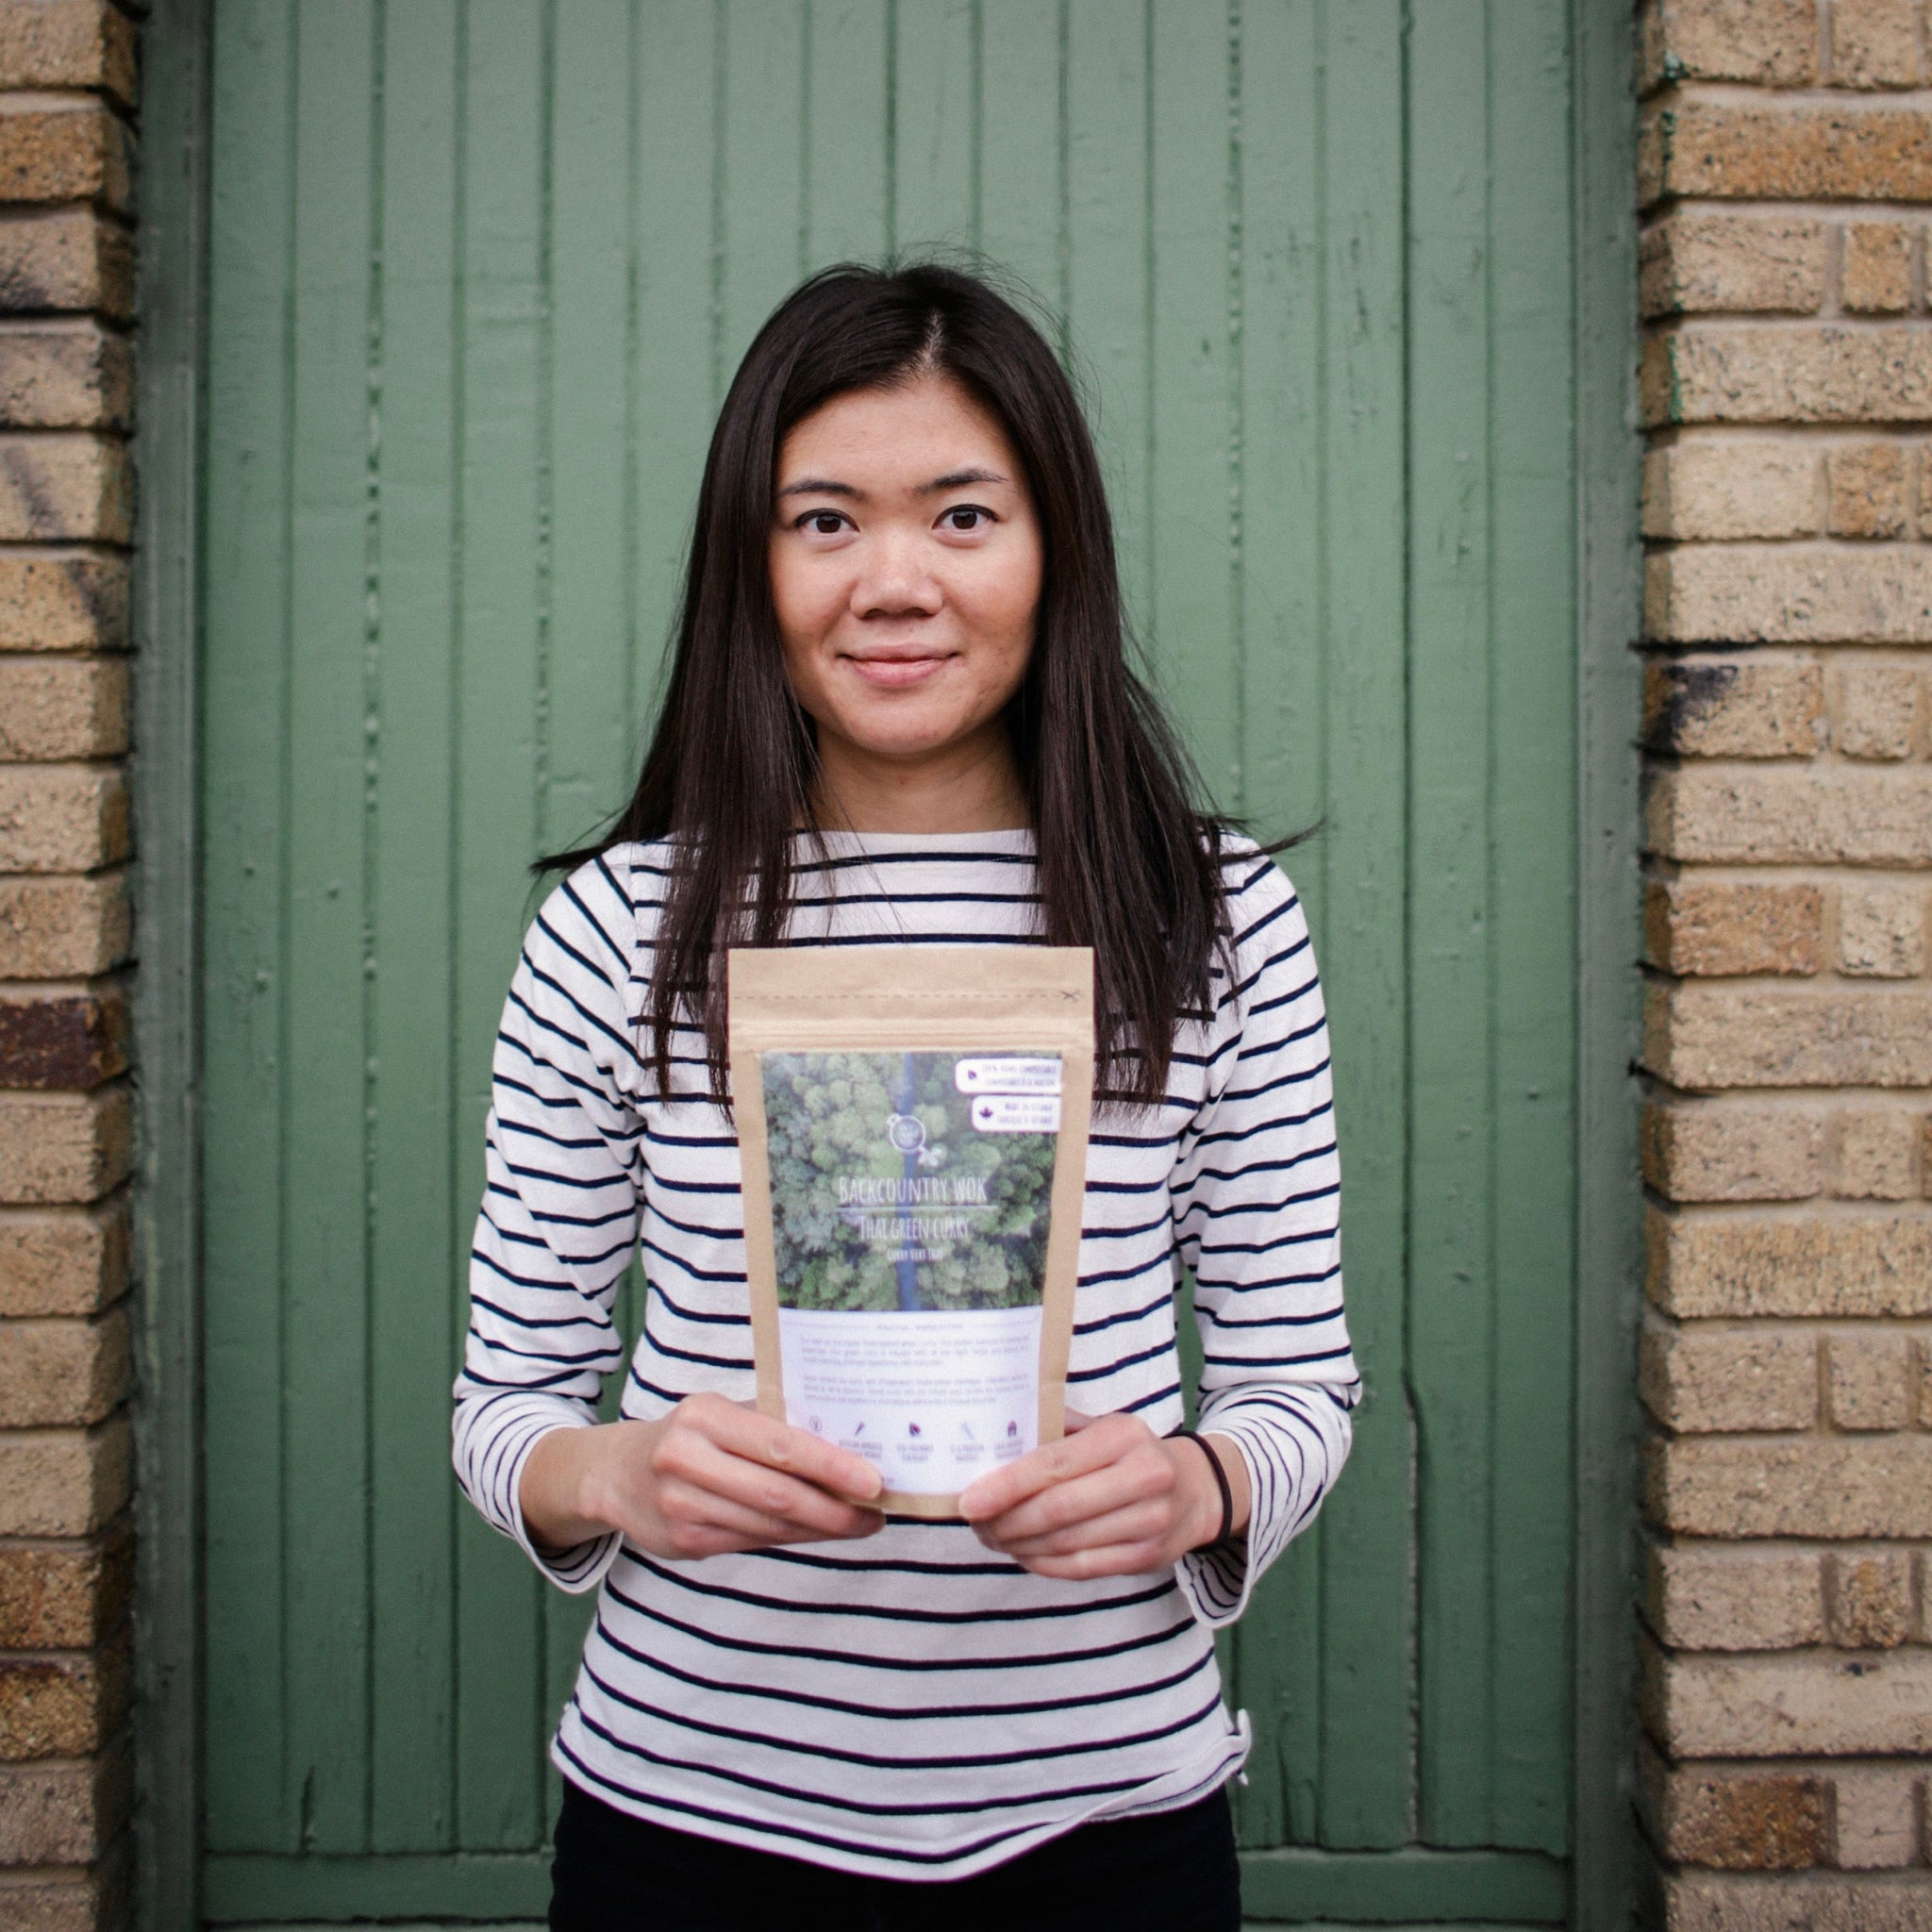 Melanie Ang, founder of Backcountry Work holding one of her products.